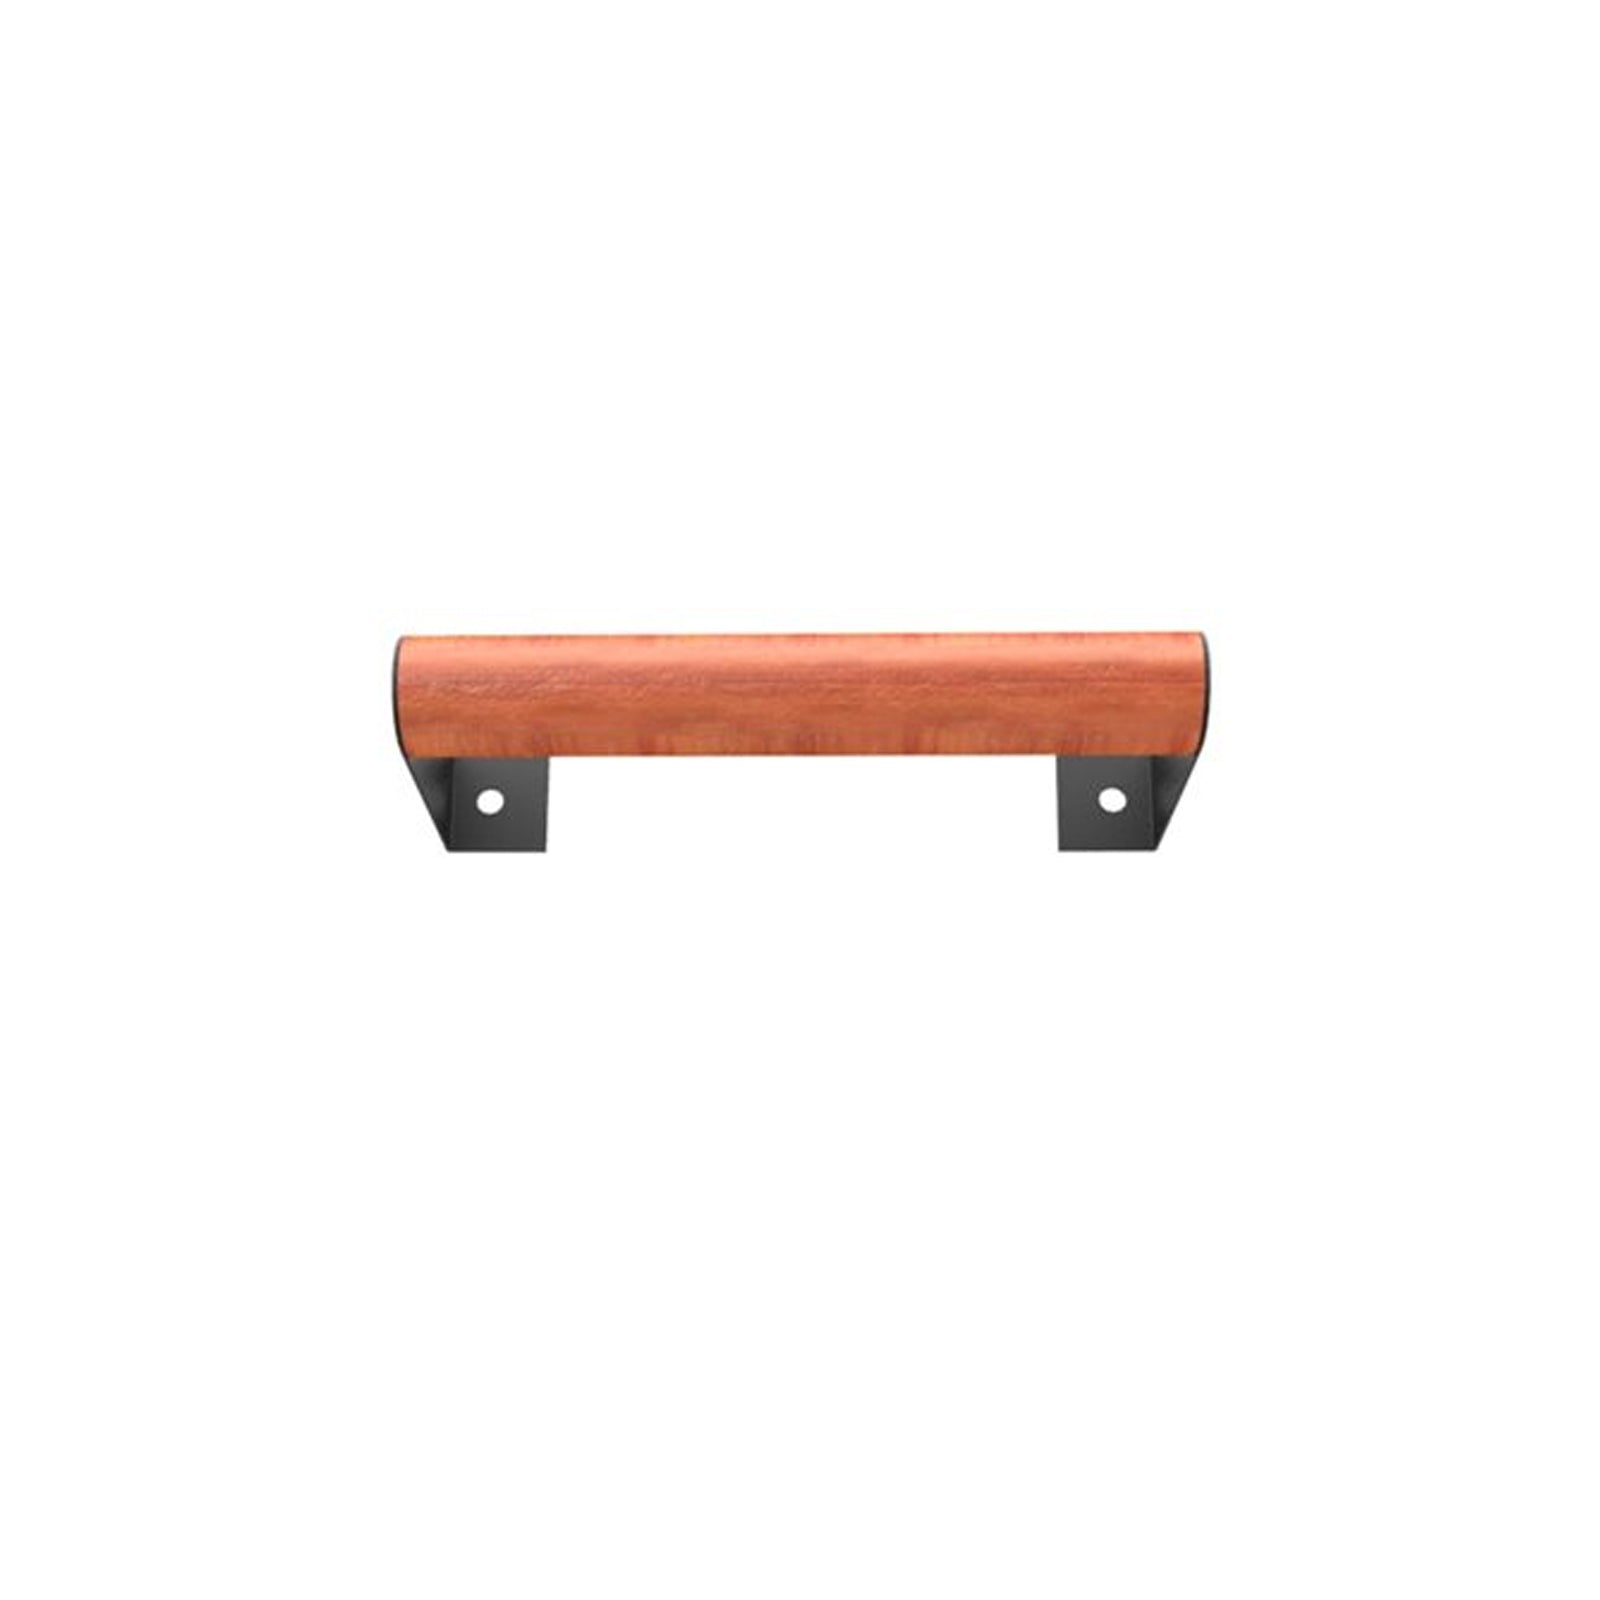 HANDLE FRONT WOOD FOR BIG GRILL & SFB